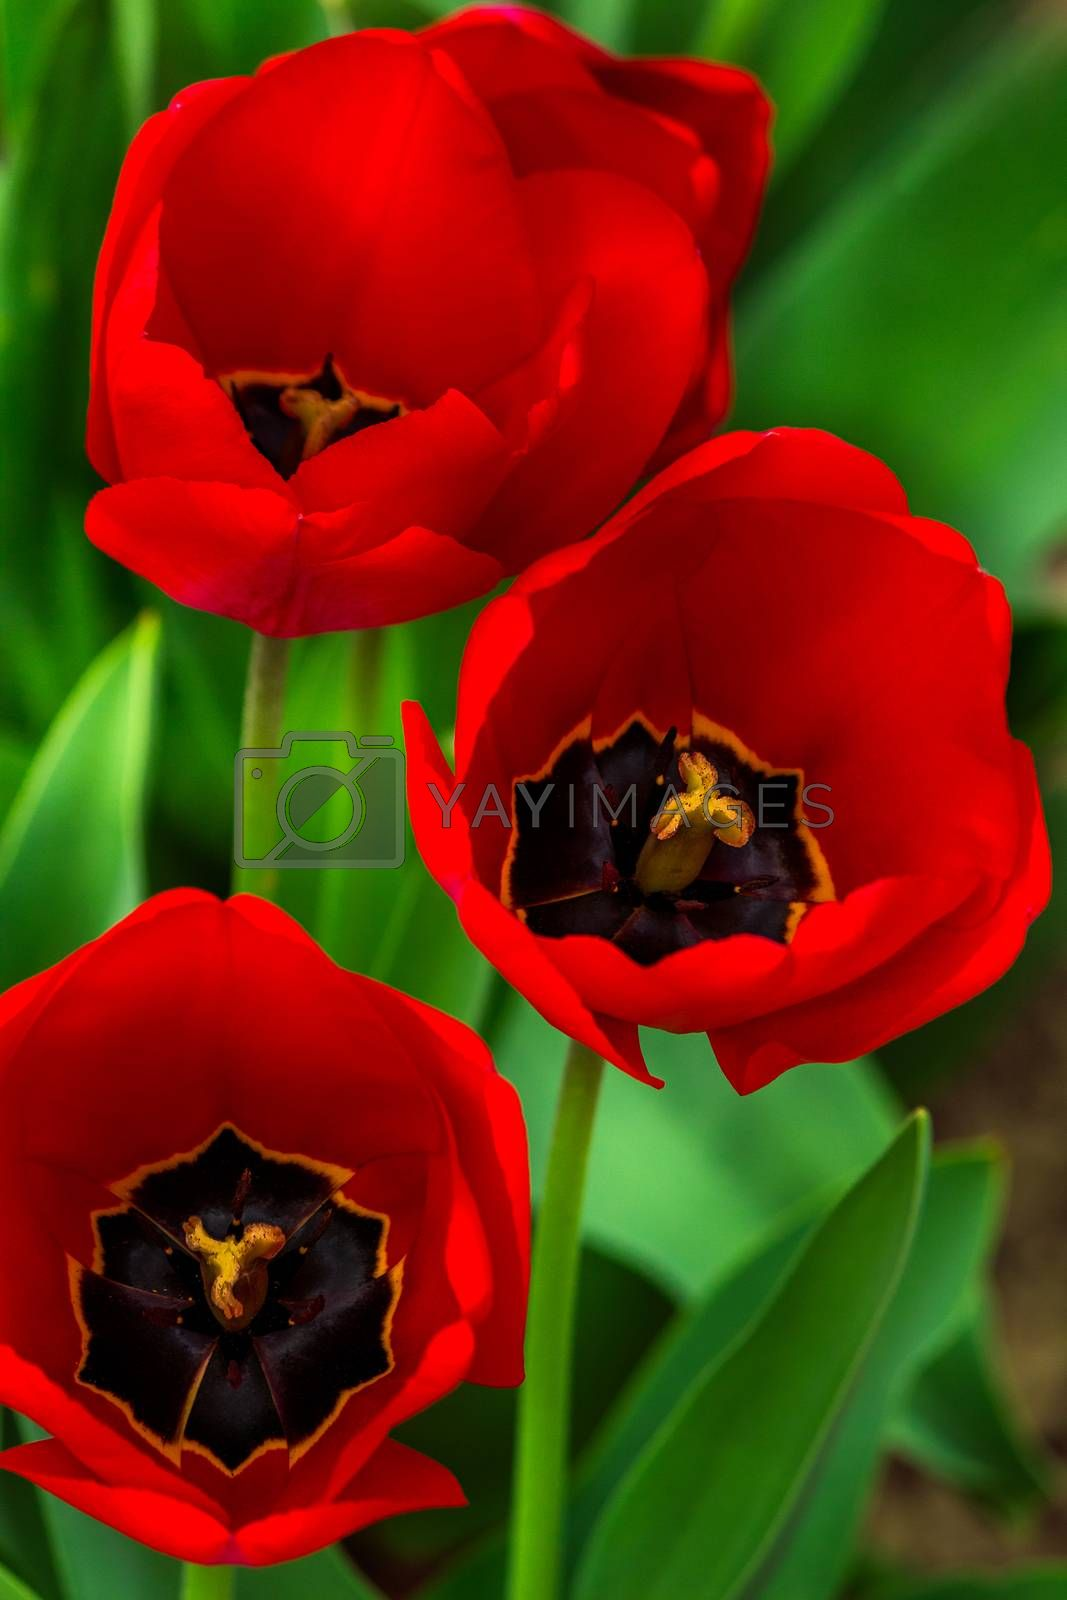 red tulips on green blurred background  by Pellinni